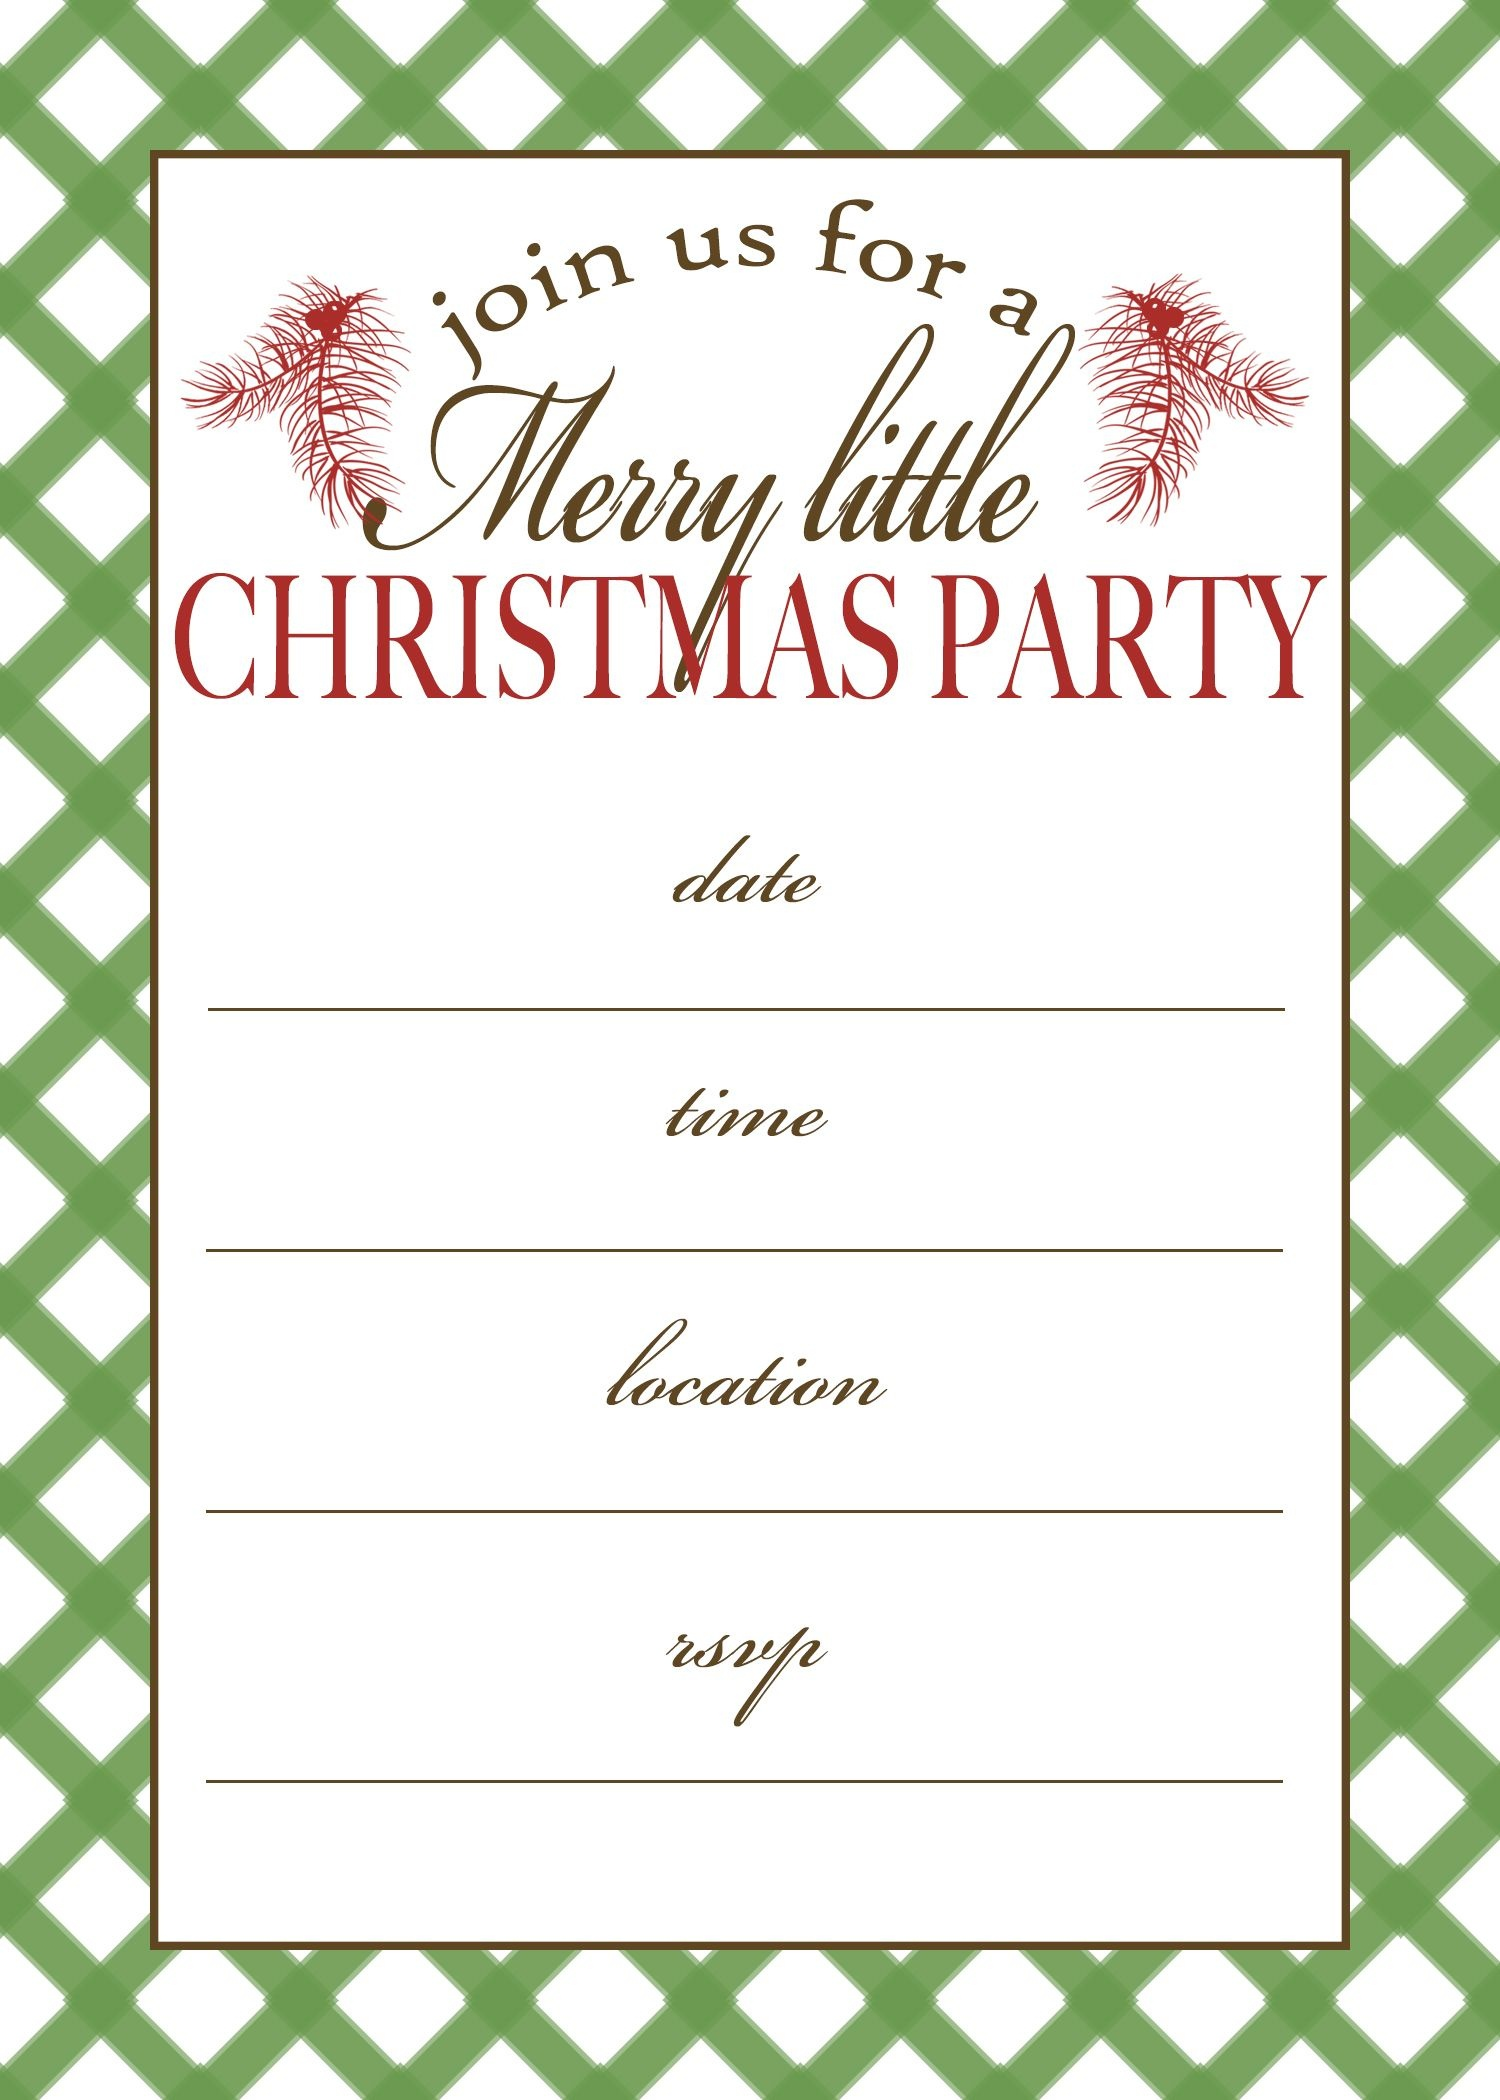 Free Printable Christmas Party Invitation | Crafts | Christmas Party - Free Printable Christmas Party Flyer Templates